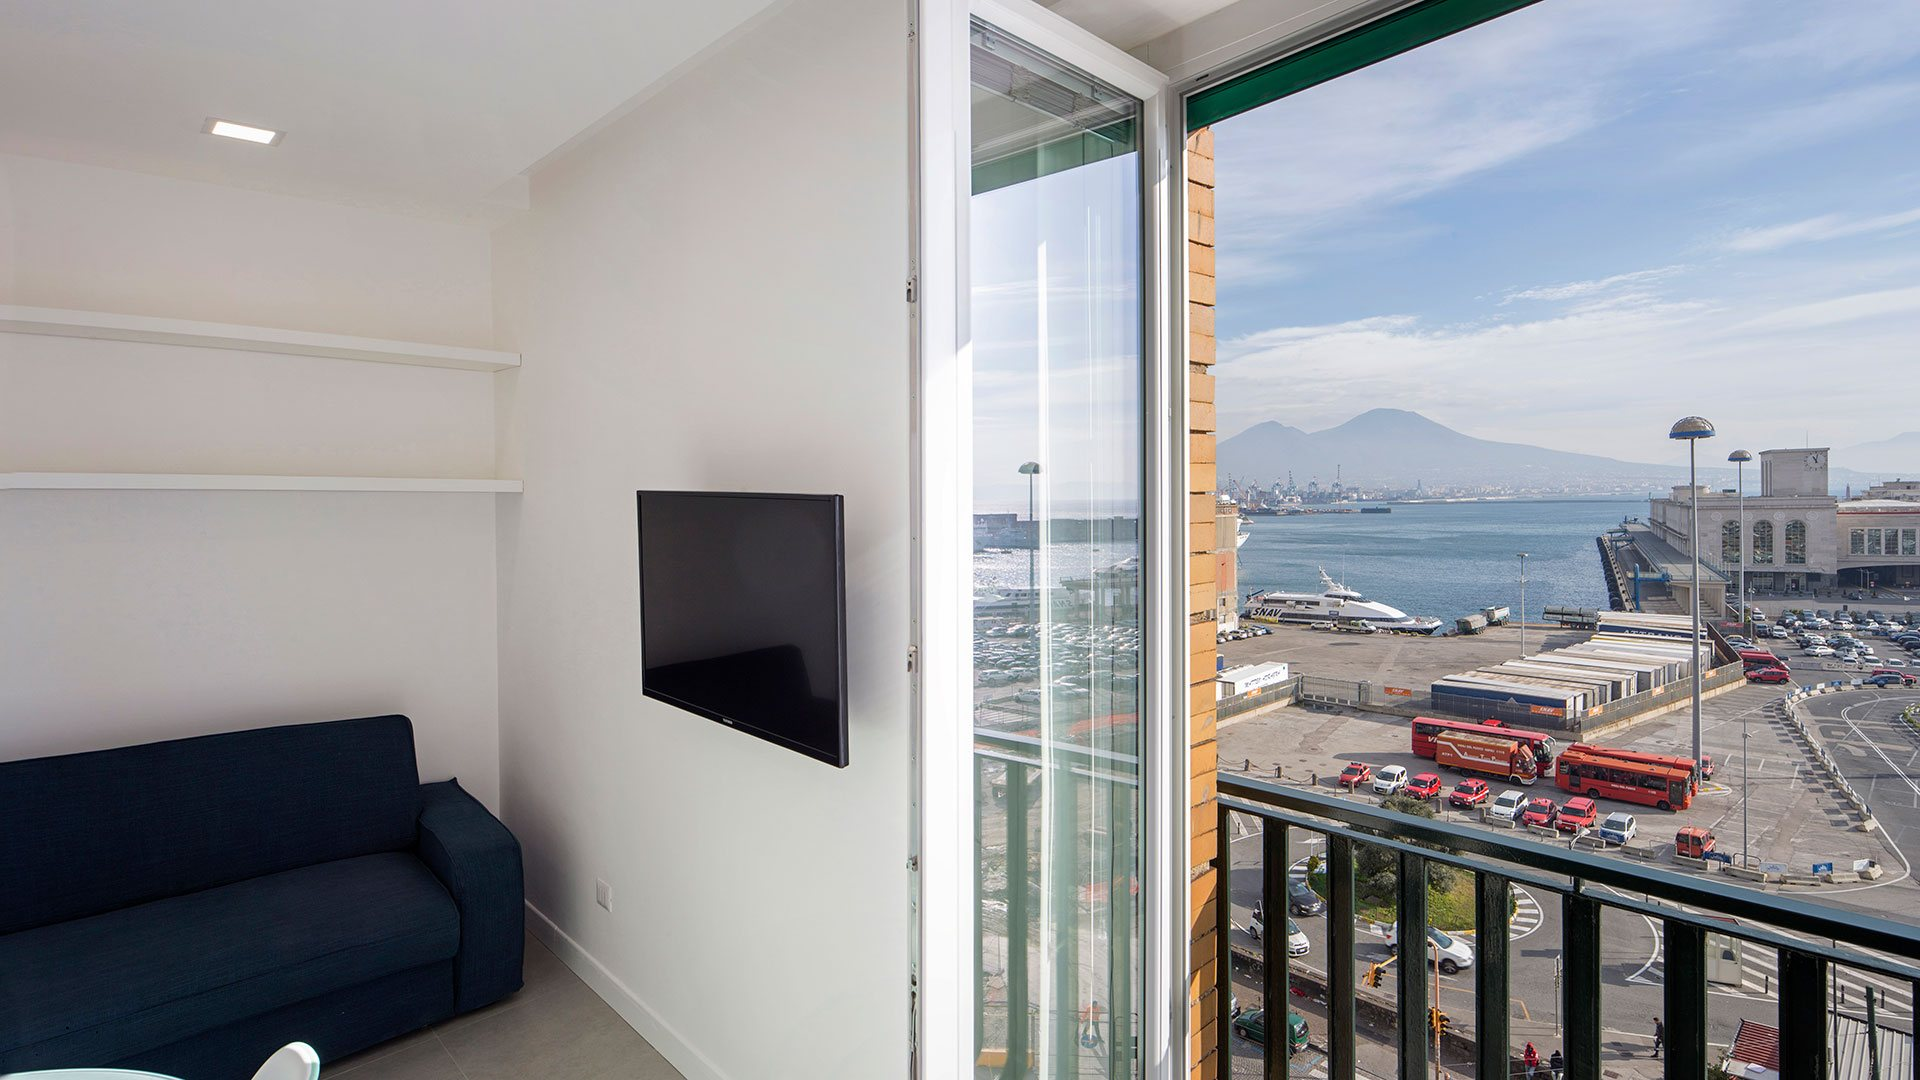 Naples Studio Apartment Seaview holyday business Napoli appartamenti